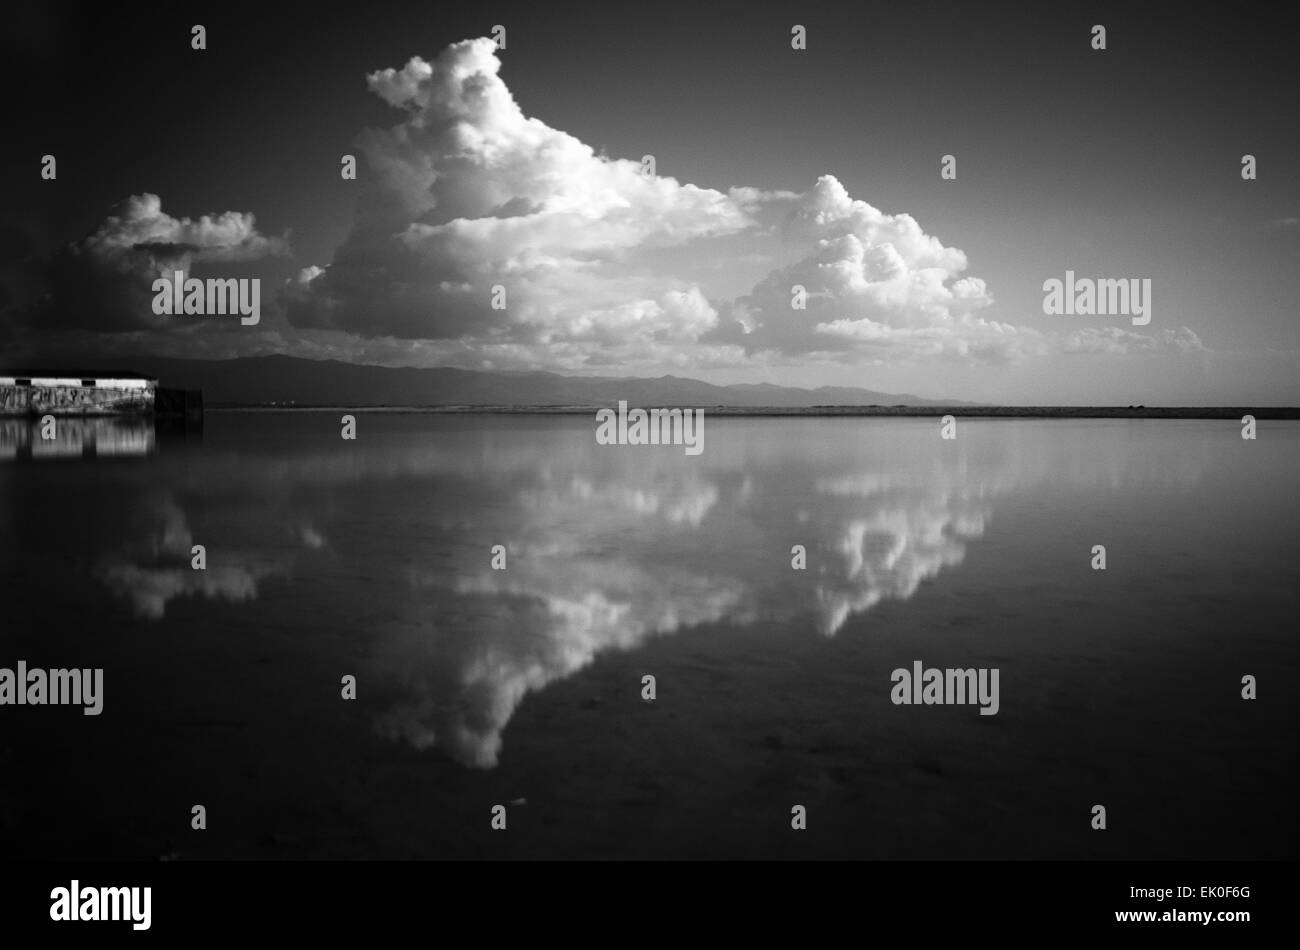 Black and white landscape in the coast with clouds and reflection as background - Stock Image